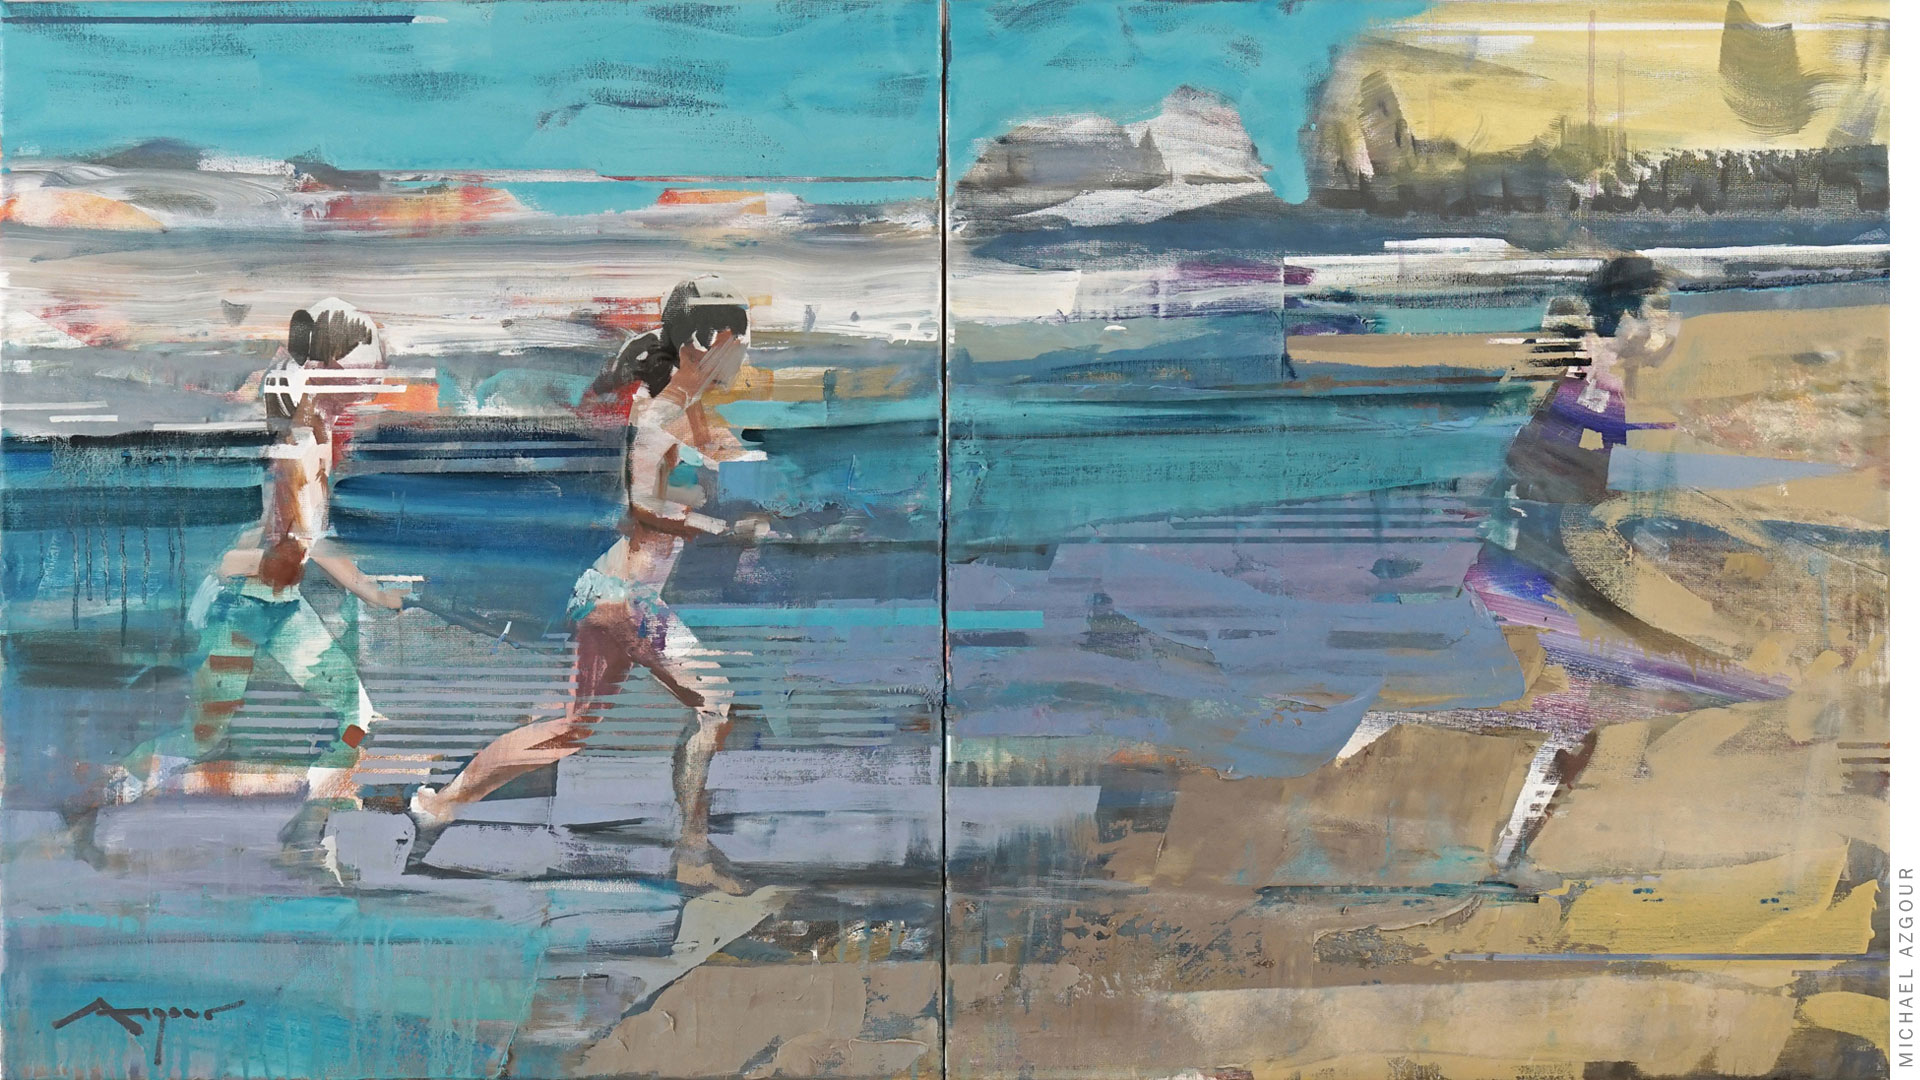 One the Shore II, a painting by Michael Azgour